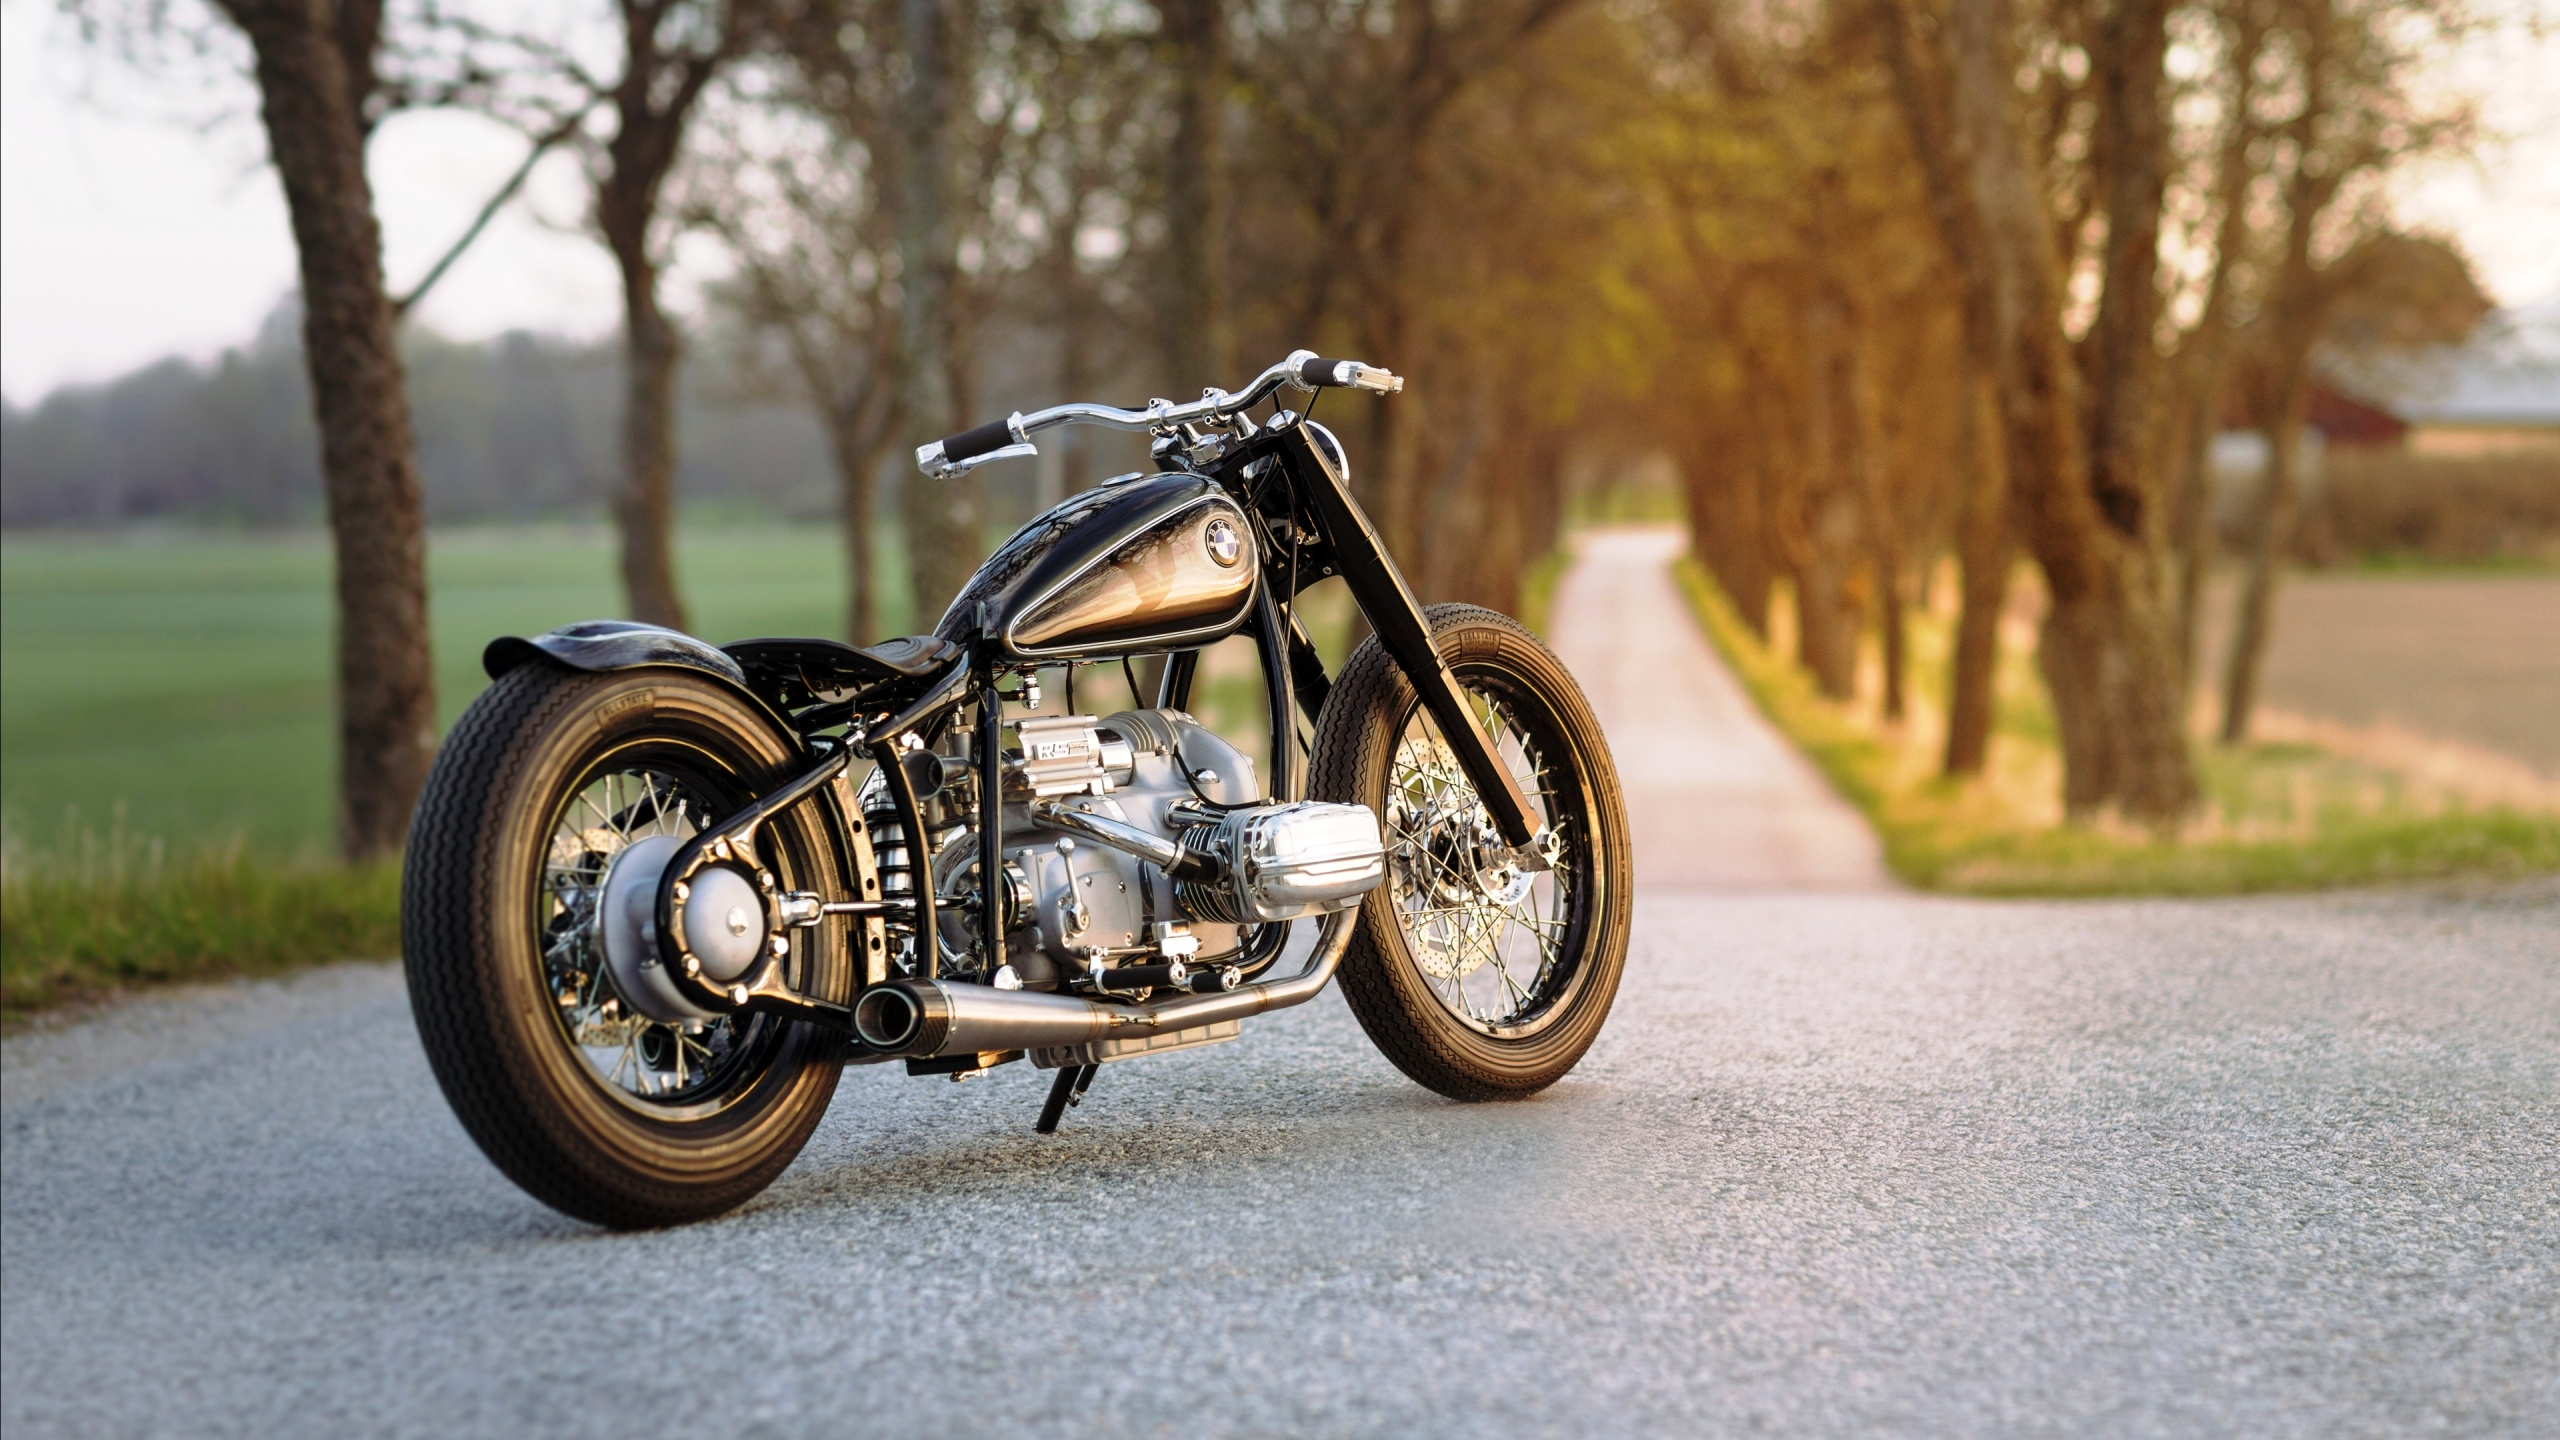 Bmw R >> BMW R5 Hommage Concept Bike Wallpapers - 2560x1440 - 1062308